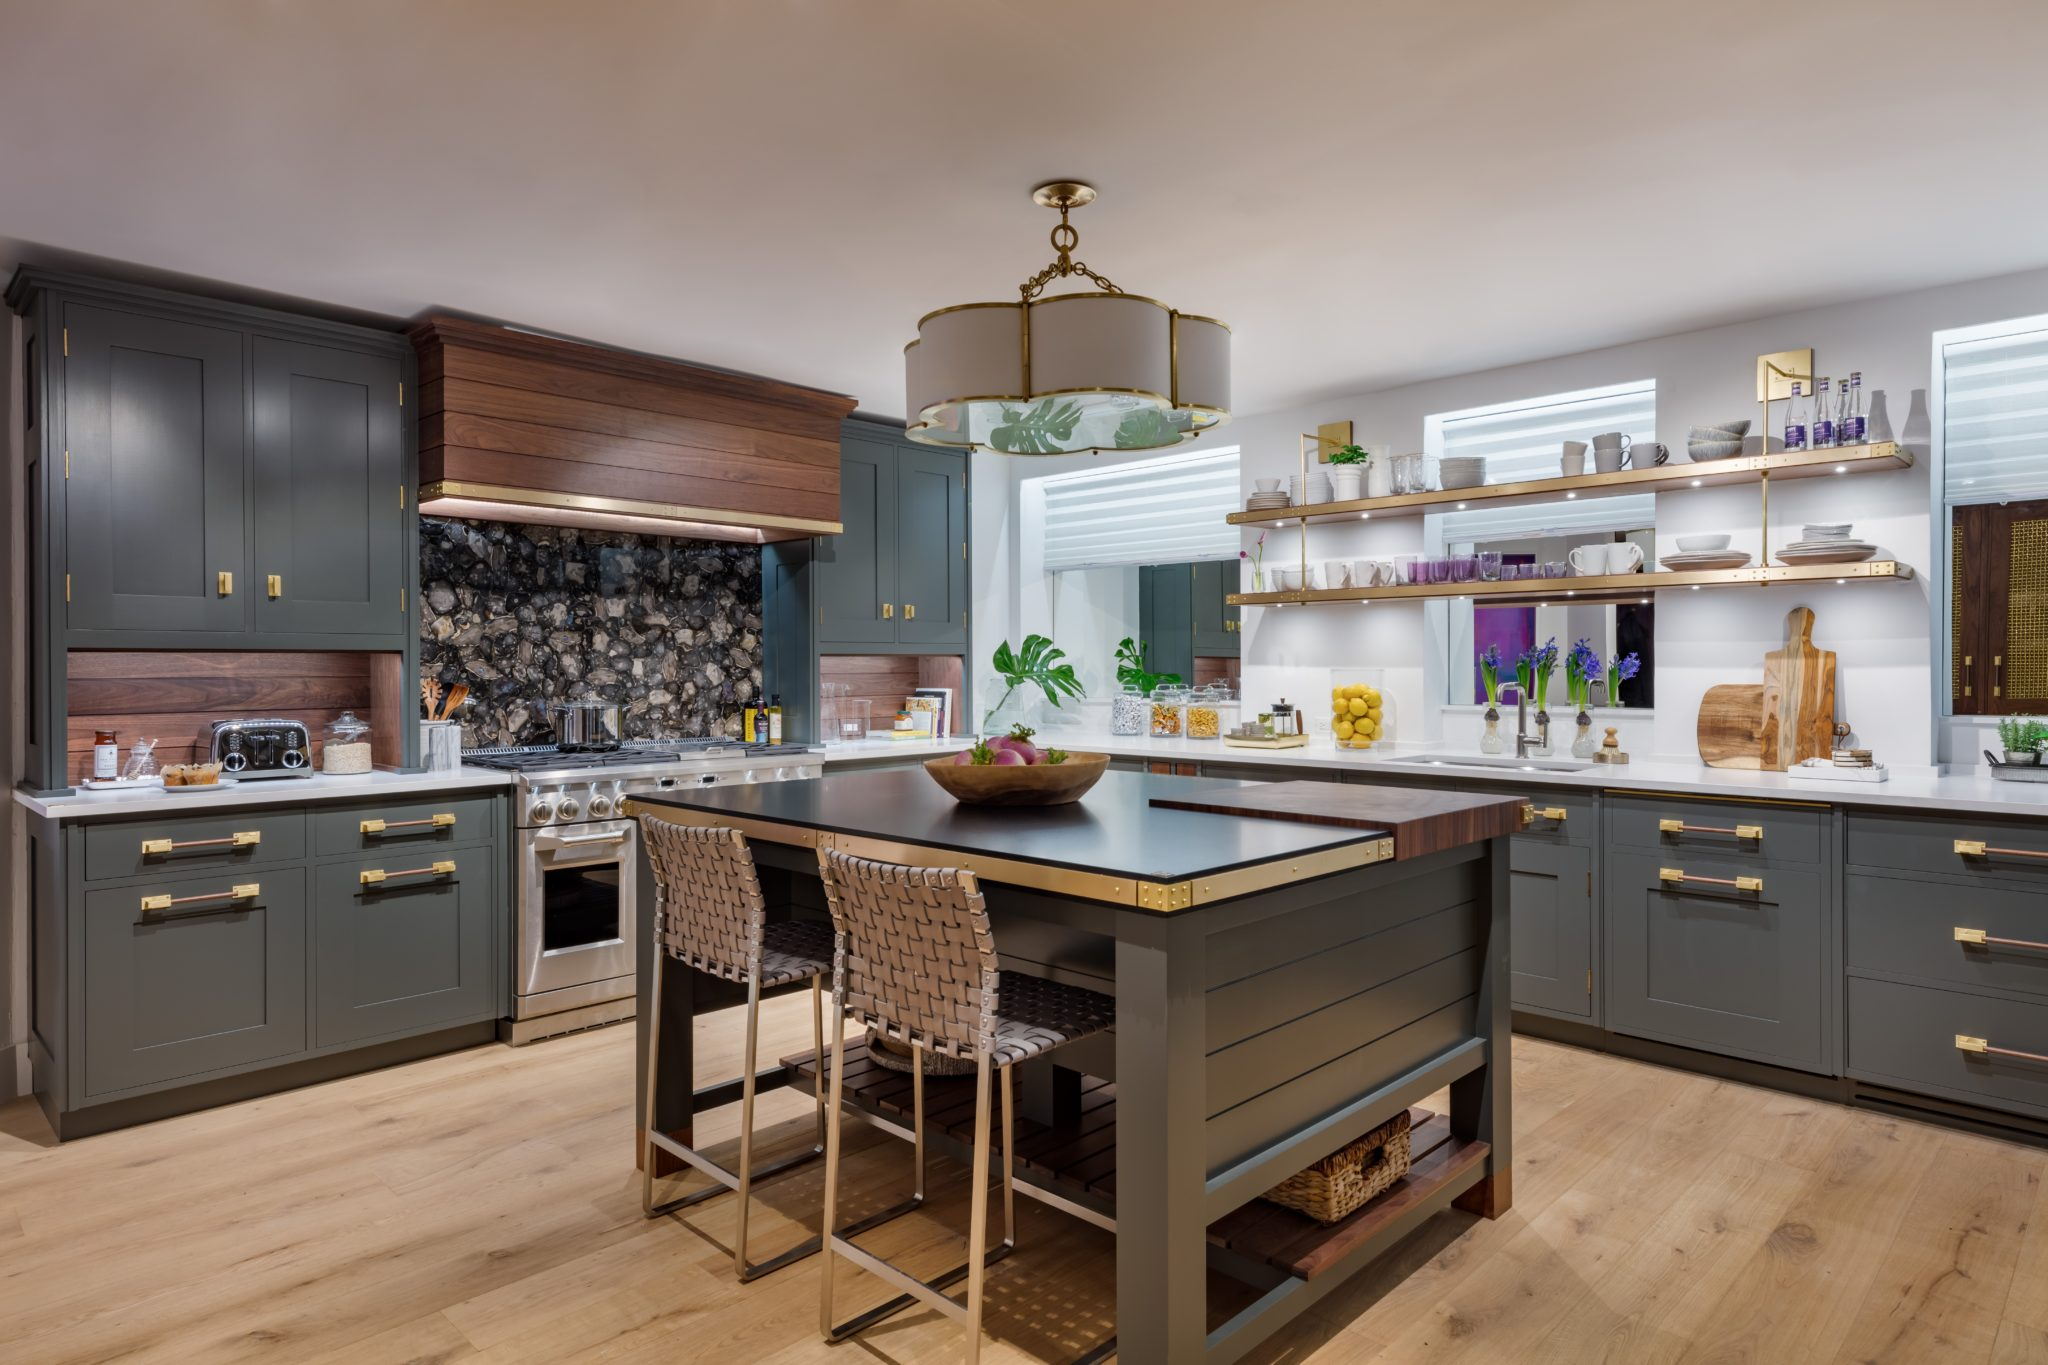 Christopher Peacockremembers the simple beauty of his childhood home through this kitchen with olive green cabinetry.